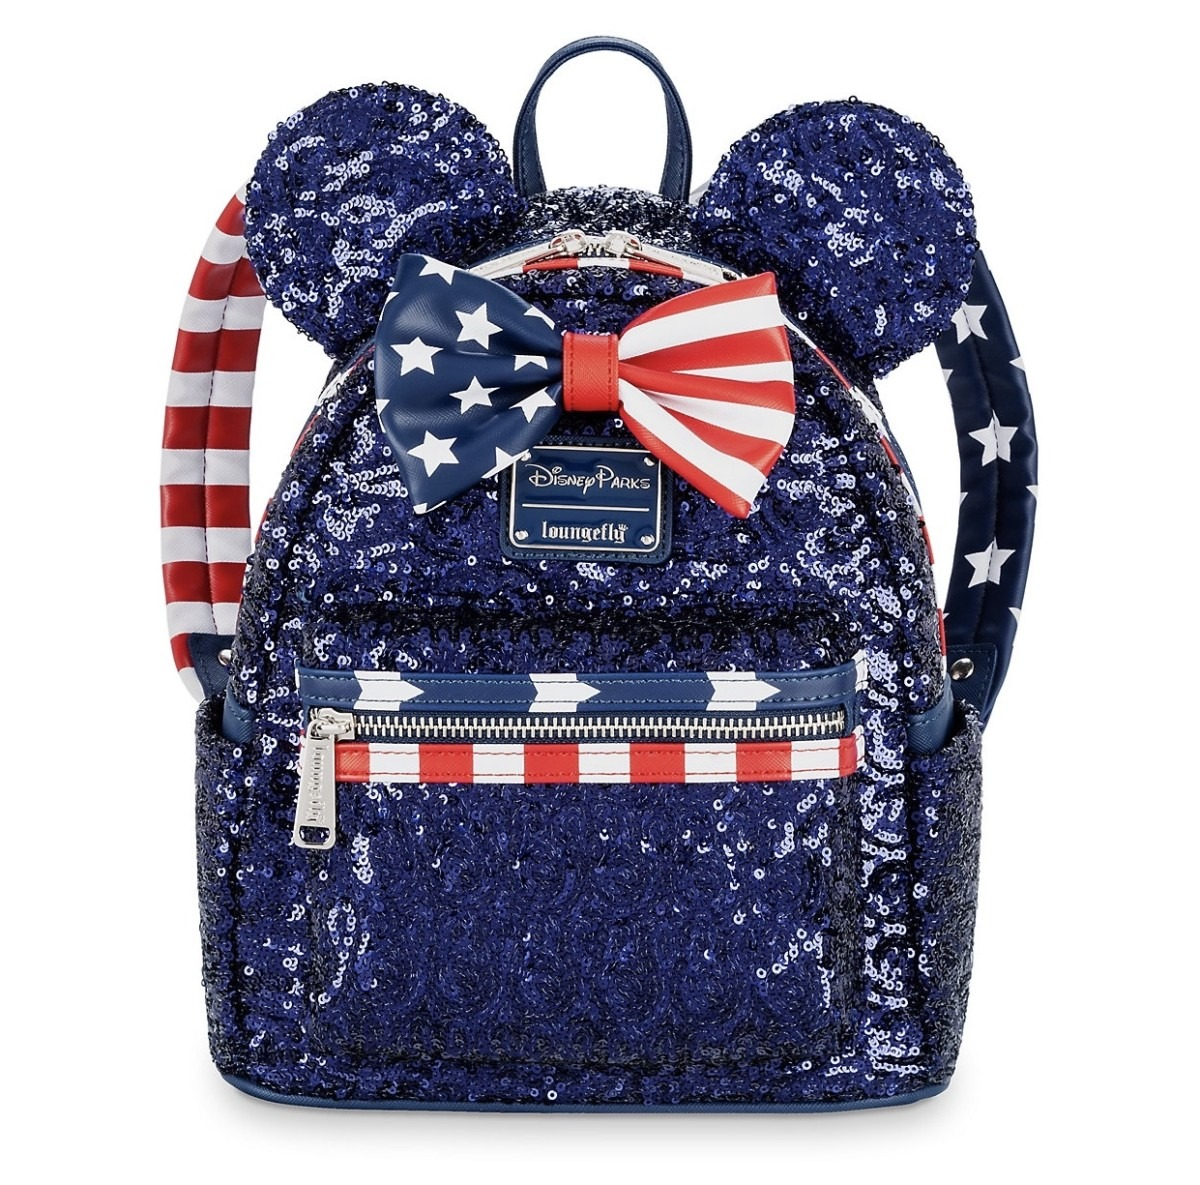 New Disney Americana Merchandise Now on shopDisney 3